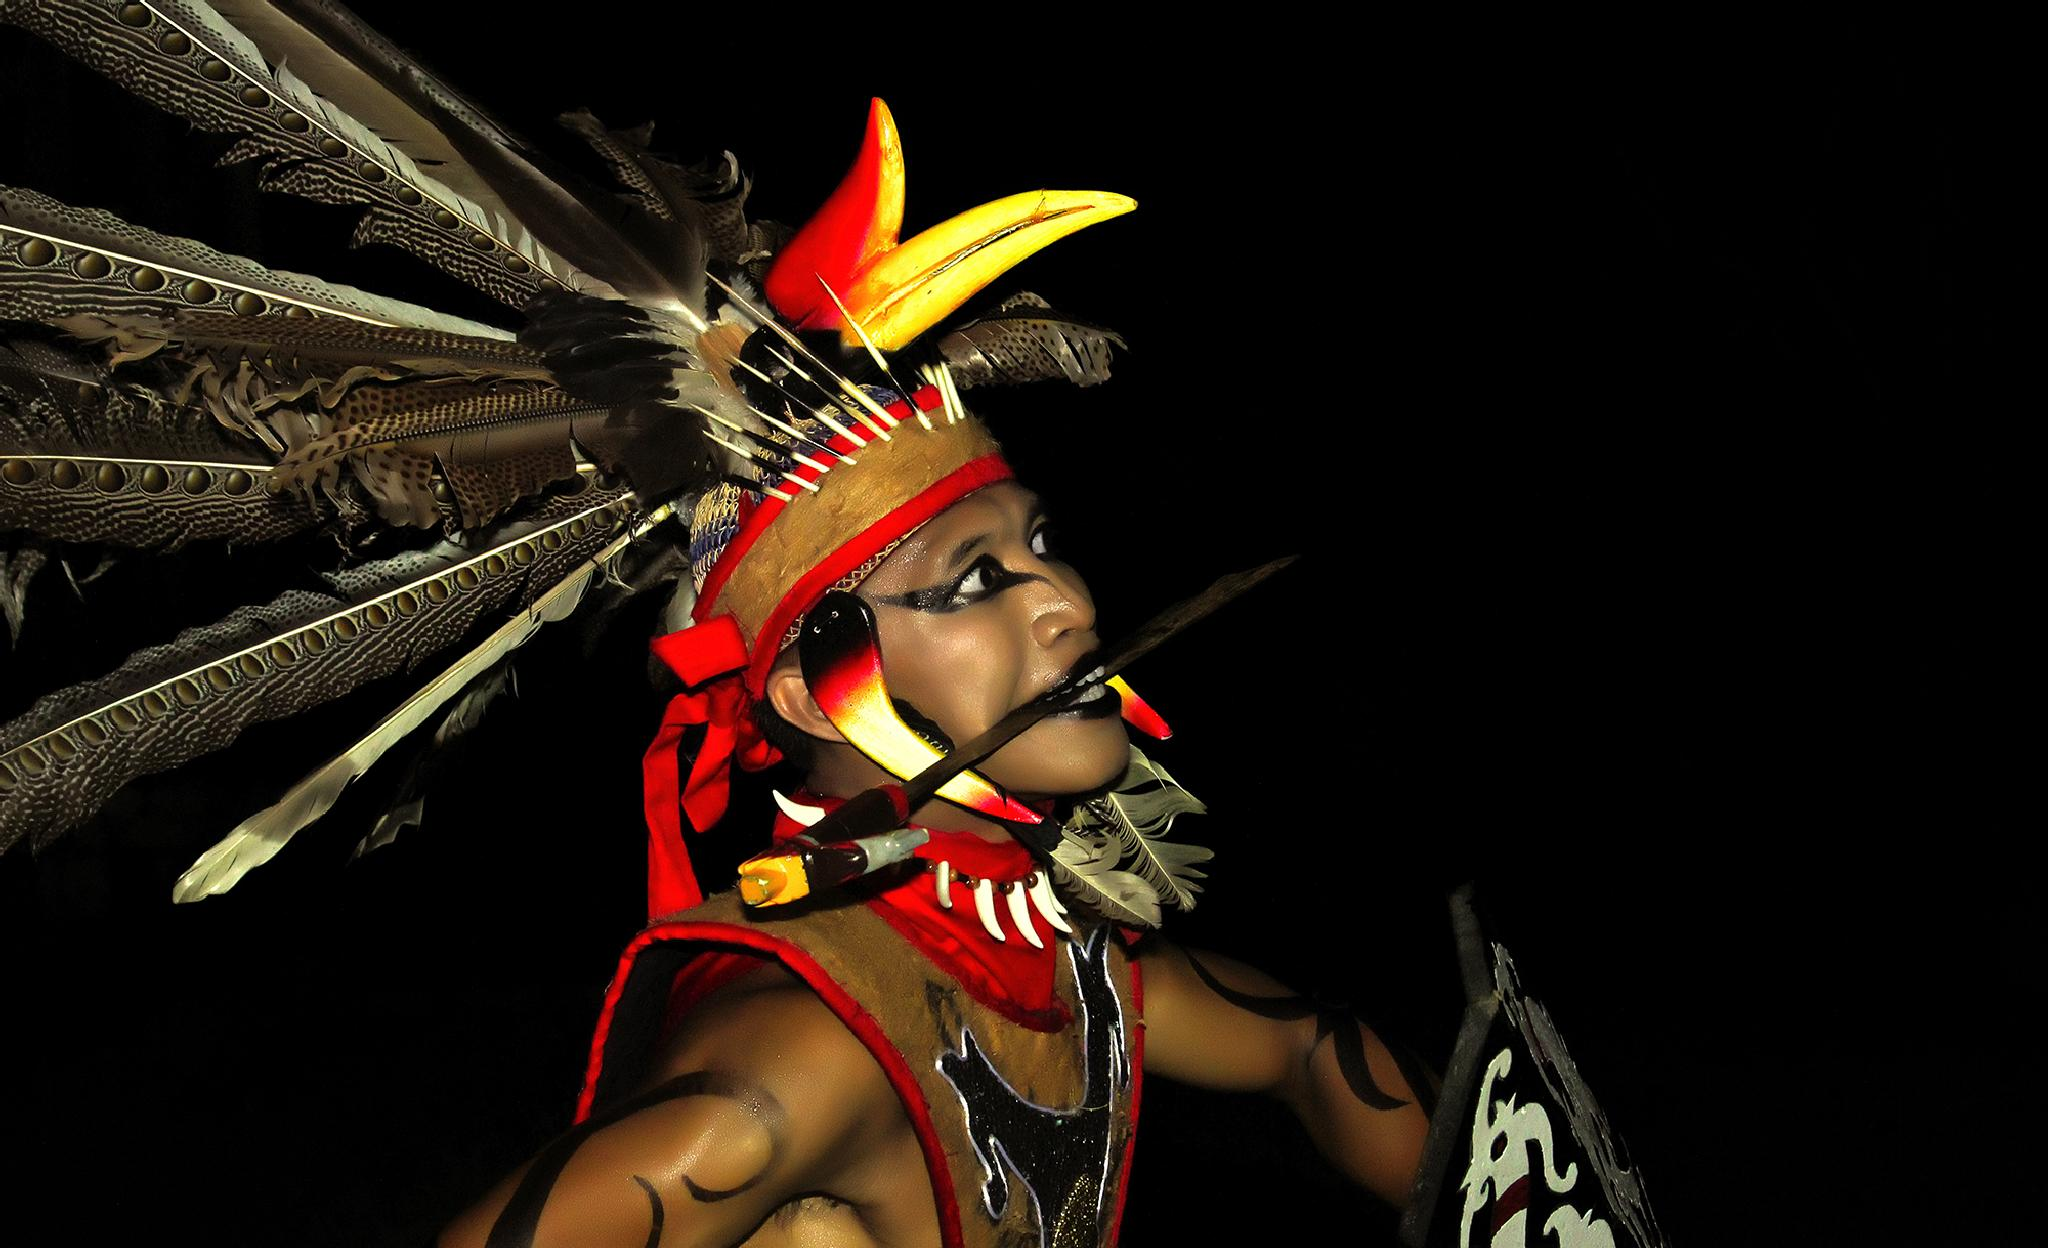 MAN OF THE DAYAK TRADITIONAL DANCE by Jukhie Damak